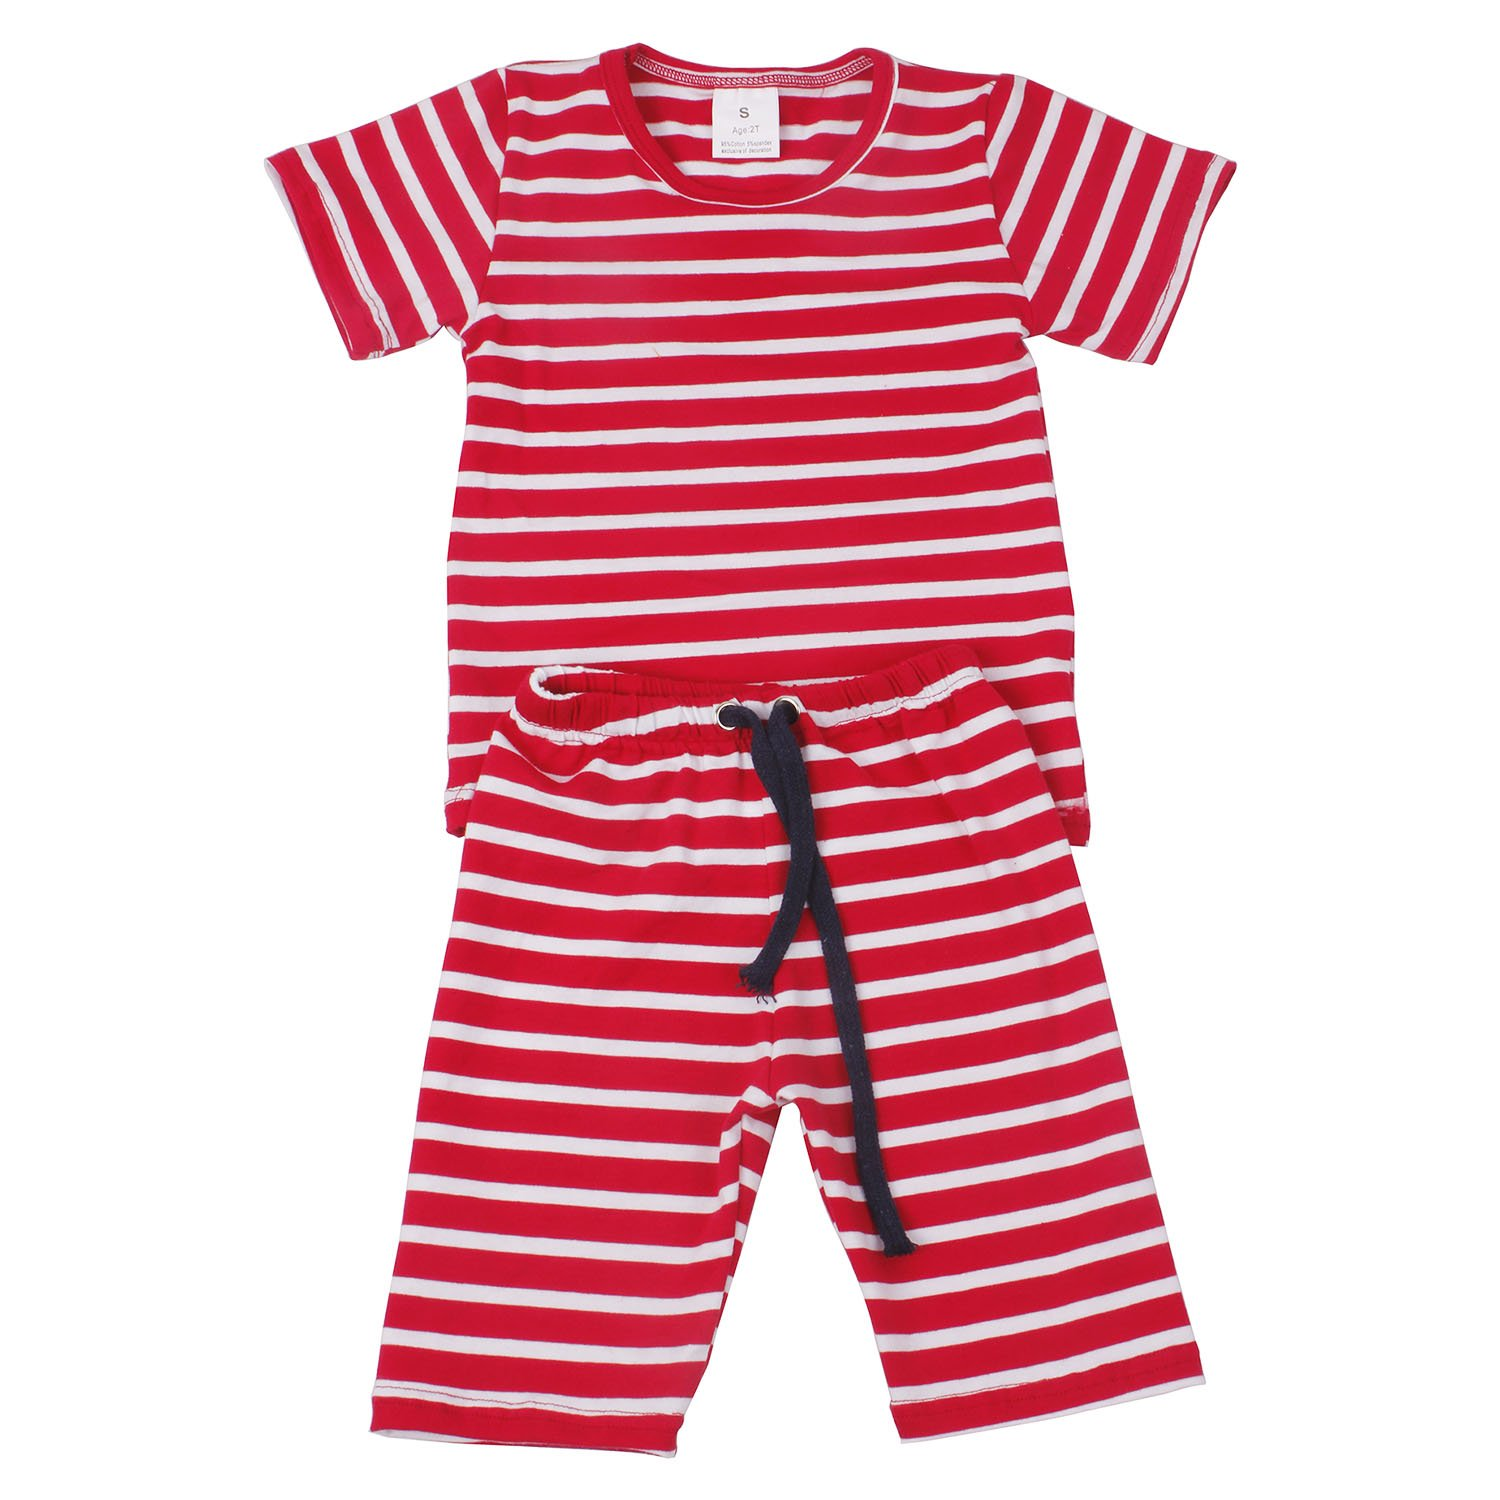 Yliyang Baby Girls Boys Summer Cotton Multistripe Short Sleeve T-Shirt Cute 2pcs Short Sets Outfits Kids Shorts Clothing Sets